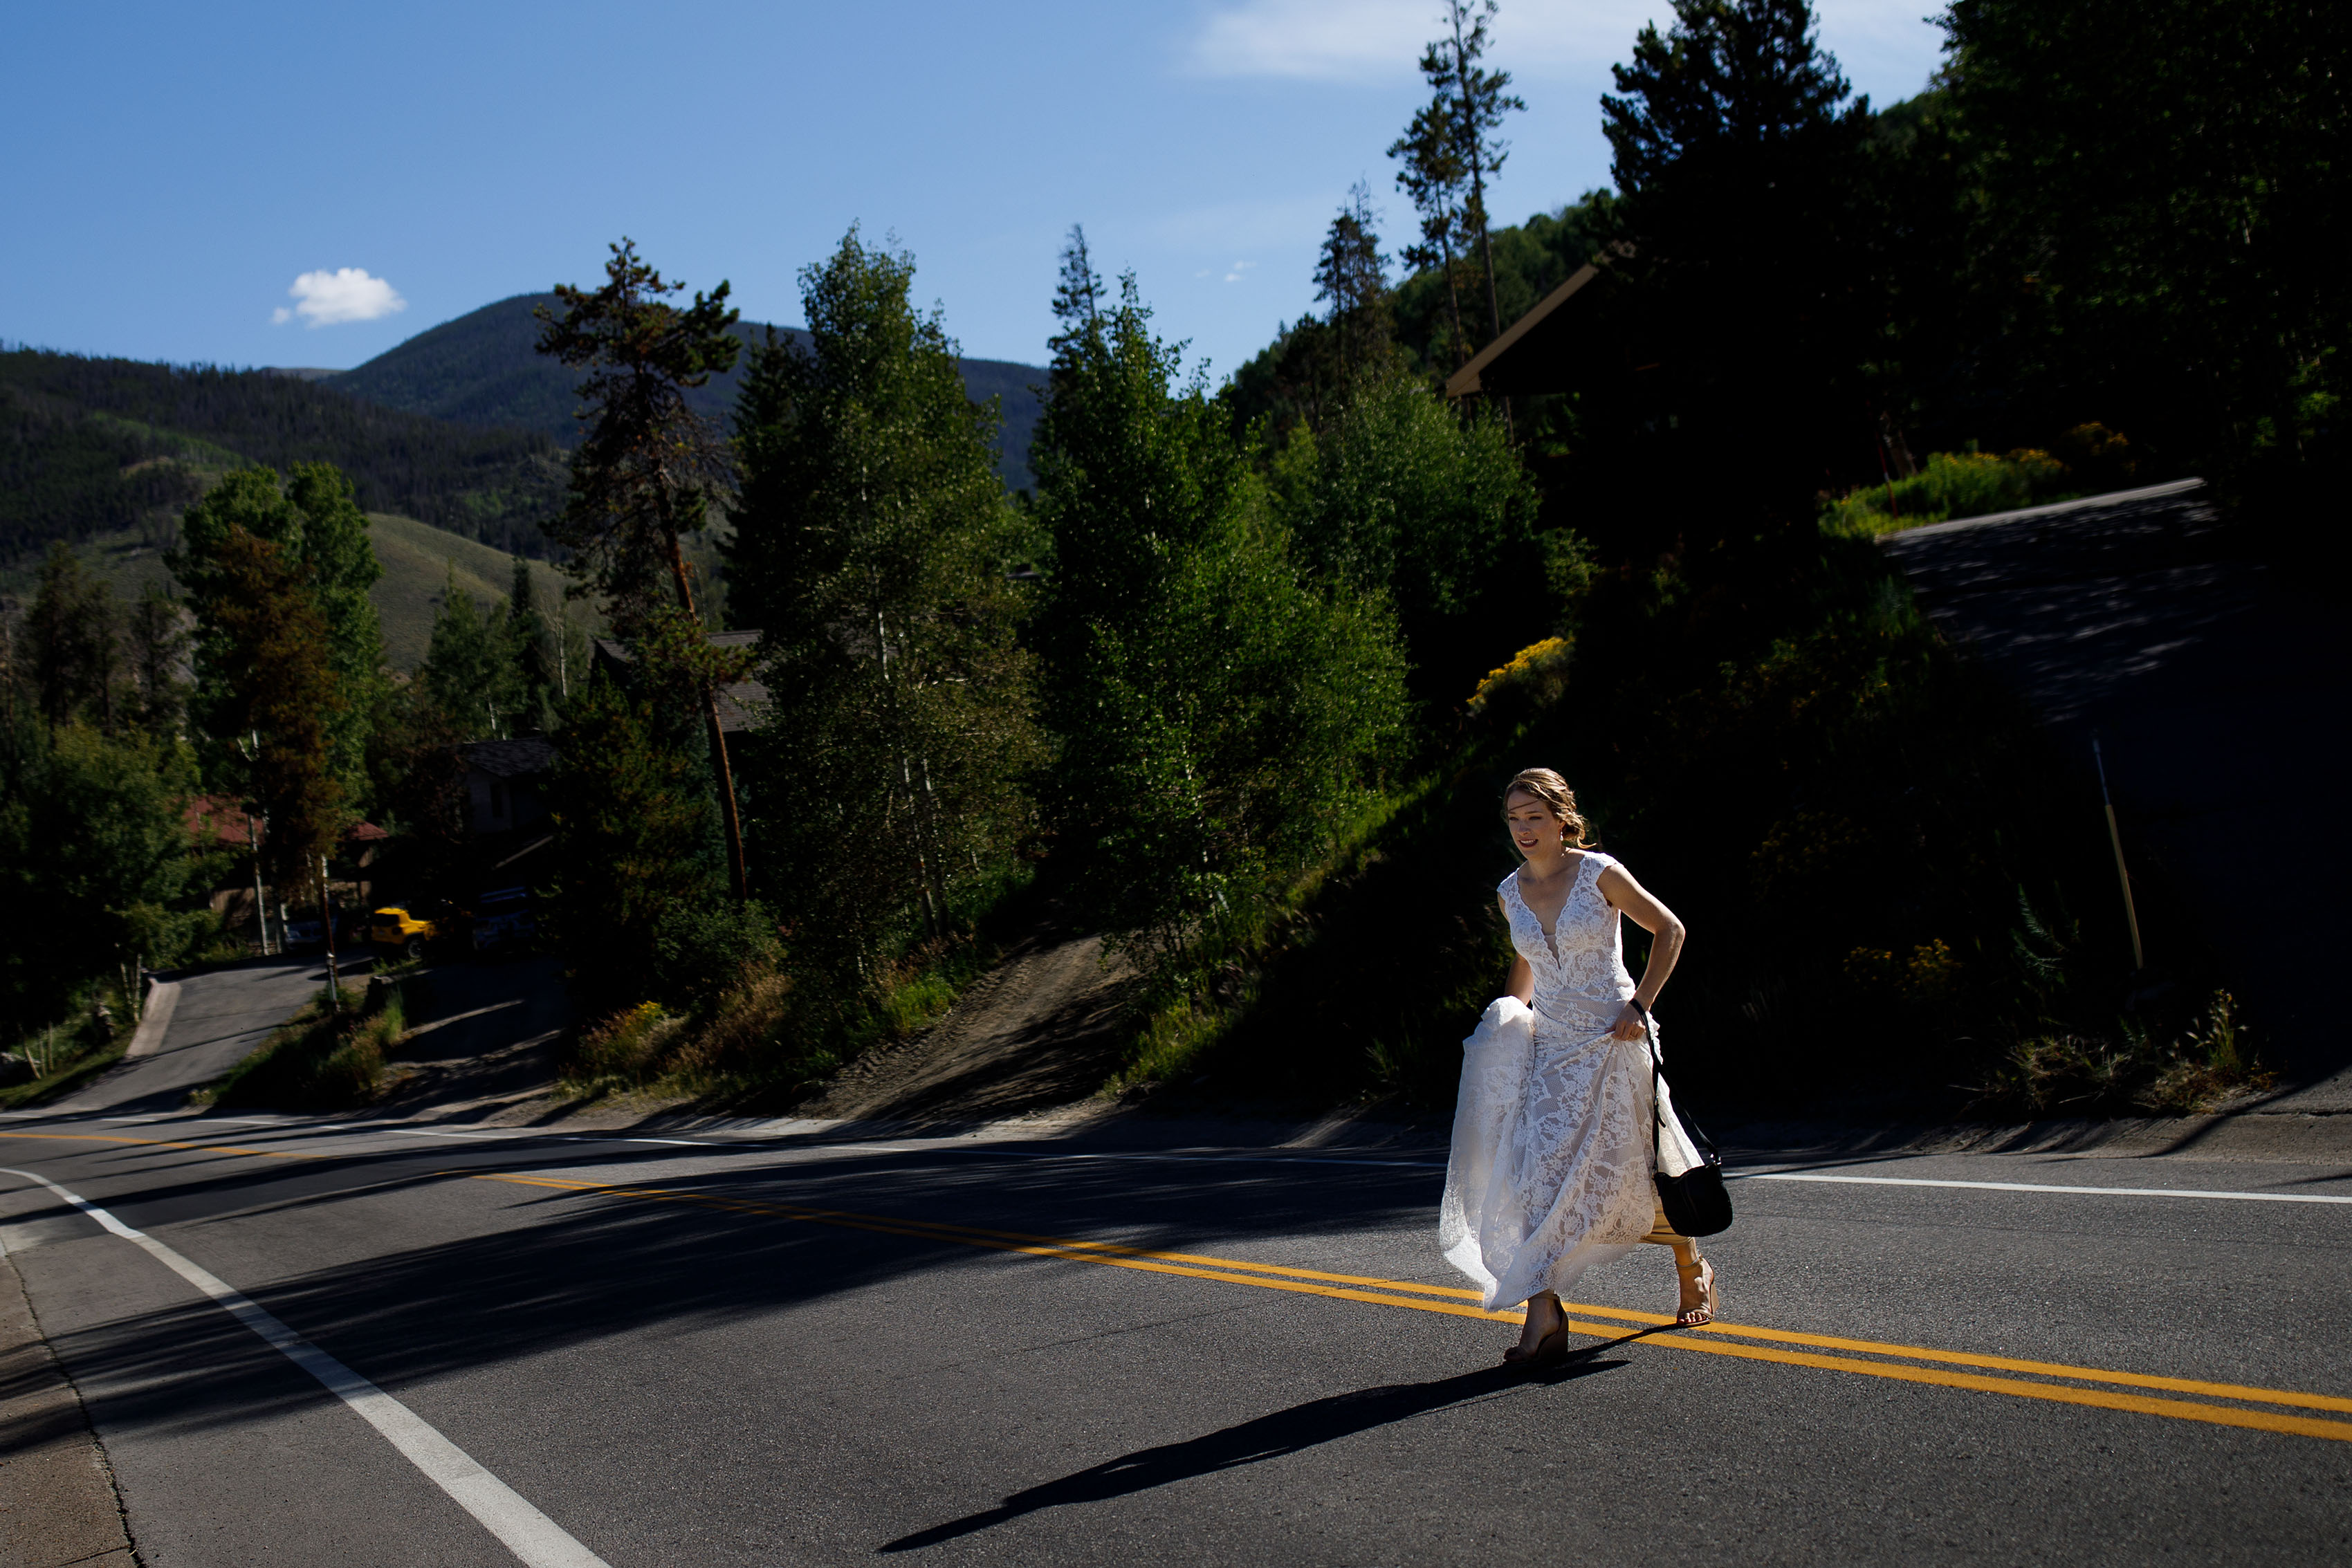 Carissa crosses the street on her wedding day